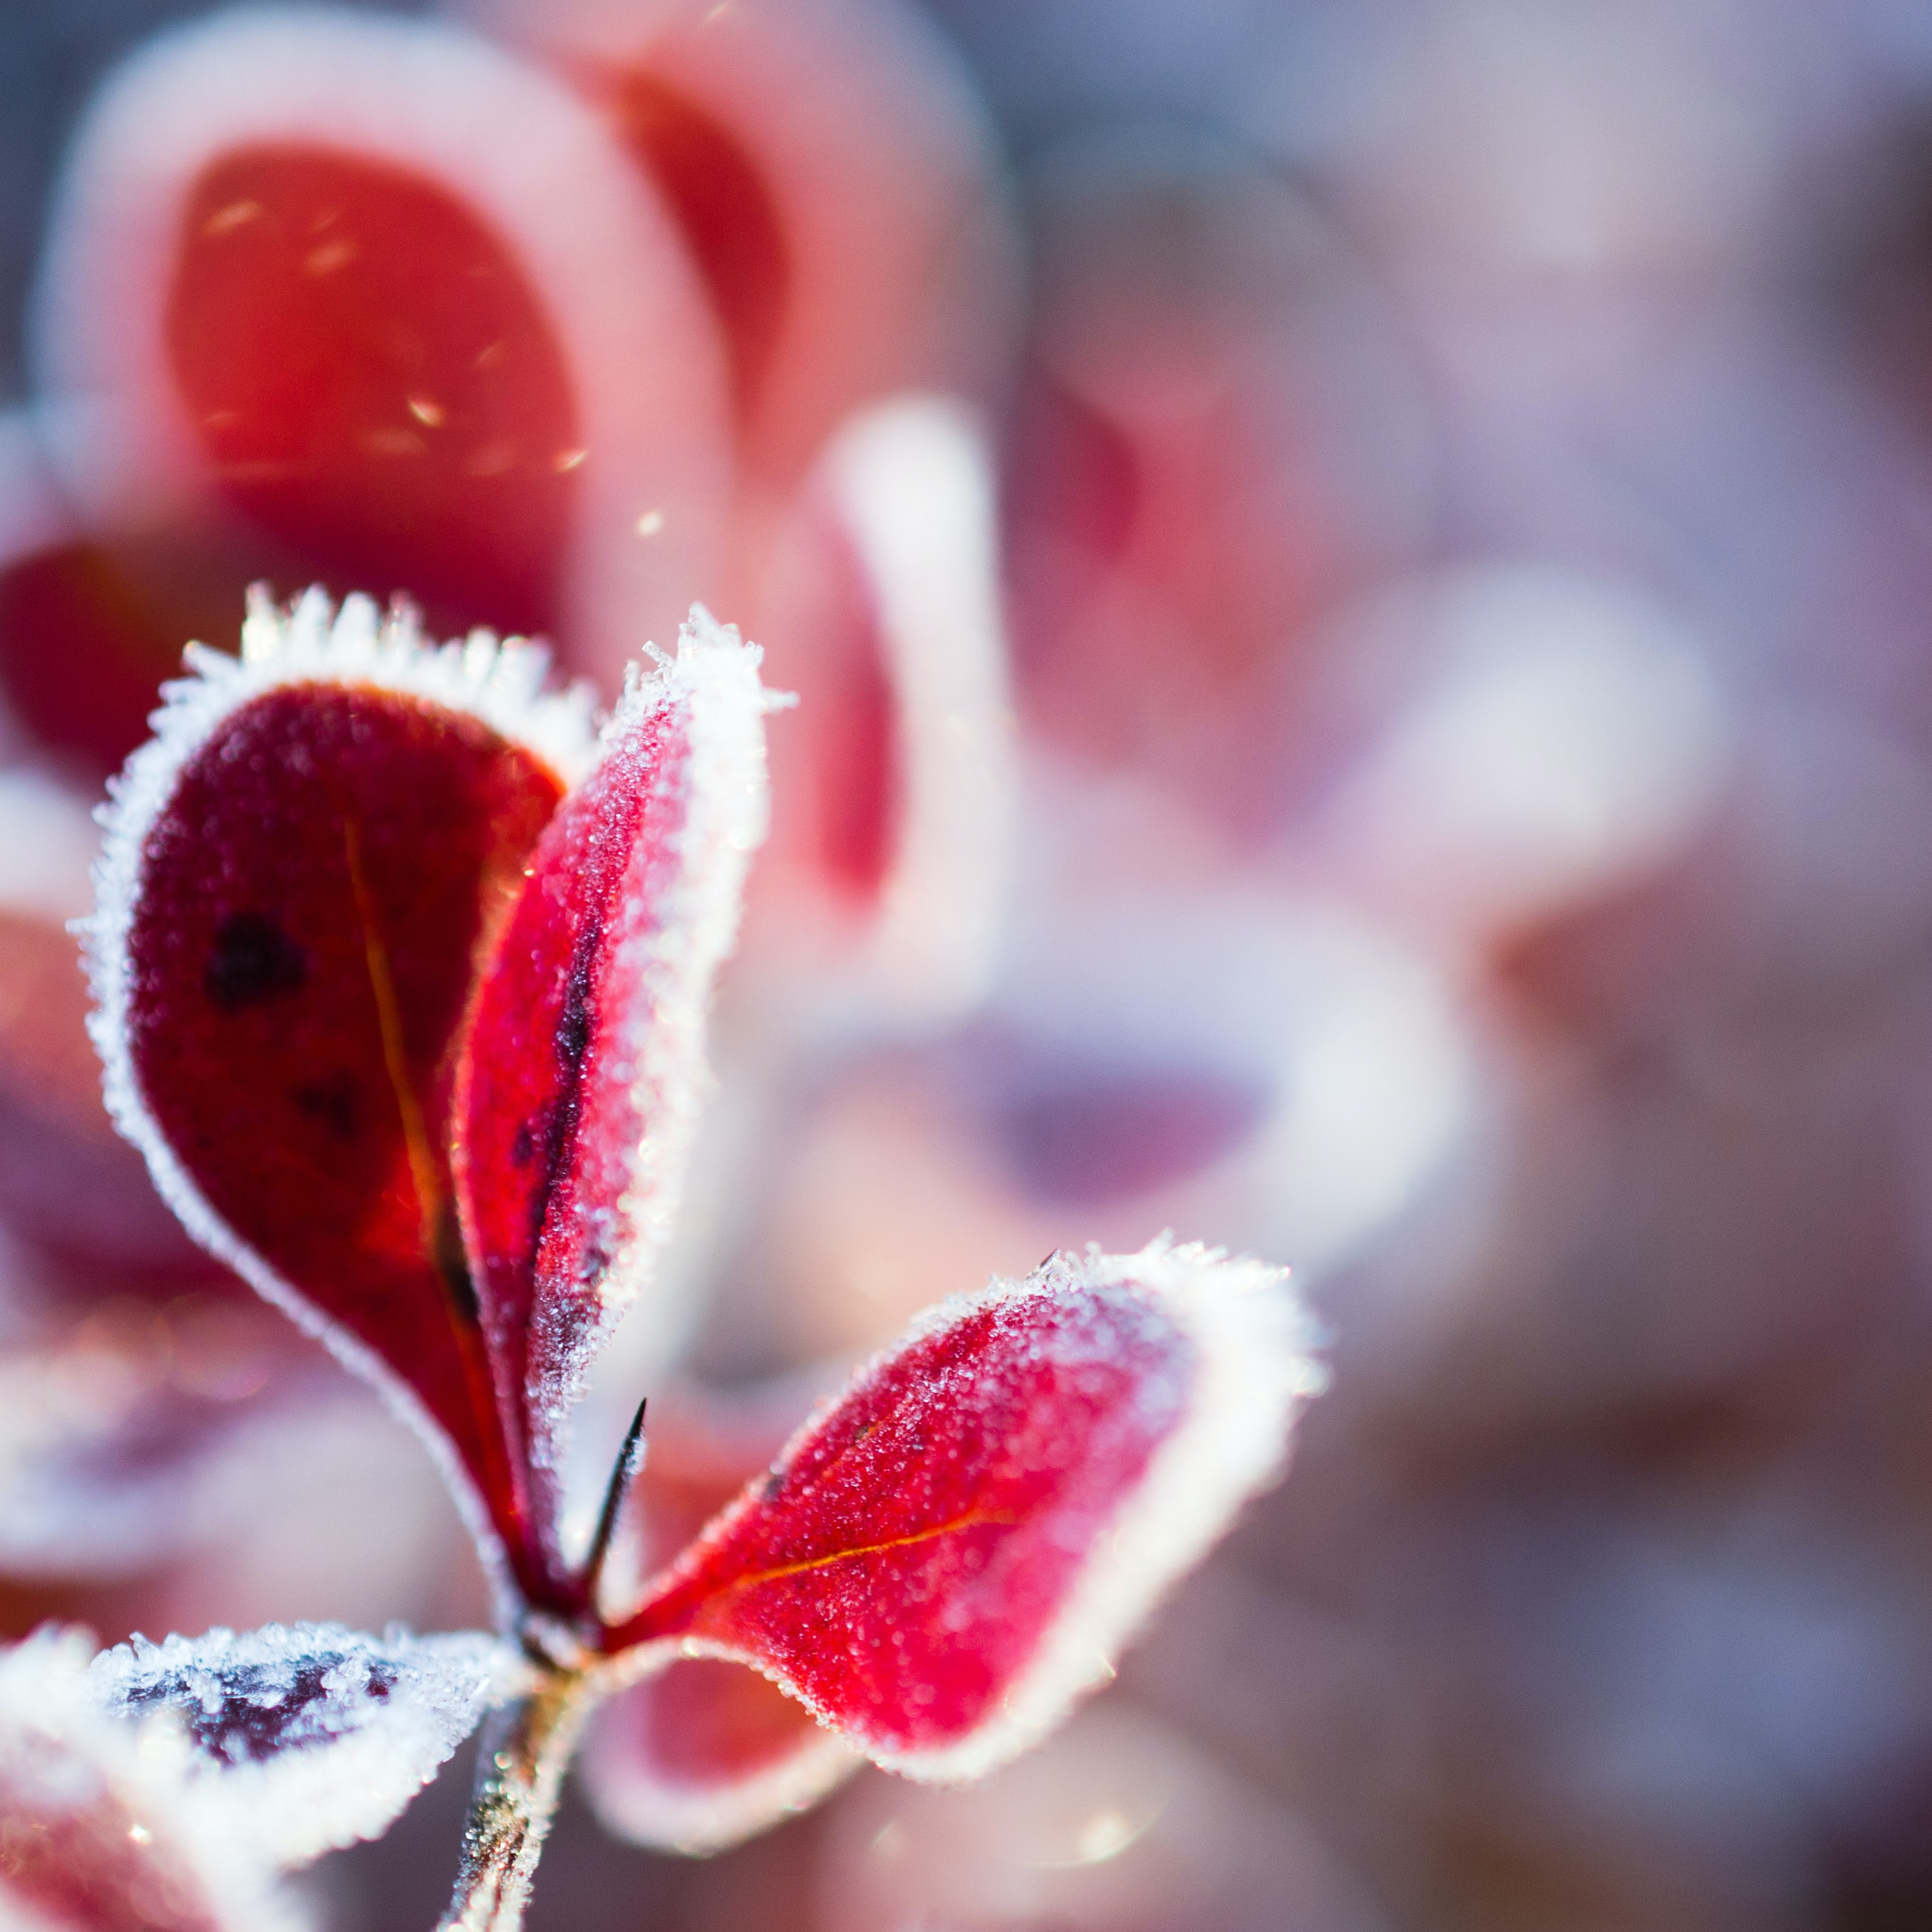 snow wallpaper frosted leaves idownloadblog unsplash austris augusts iPad